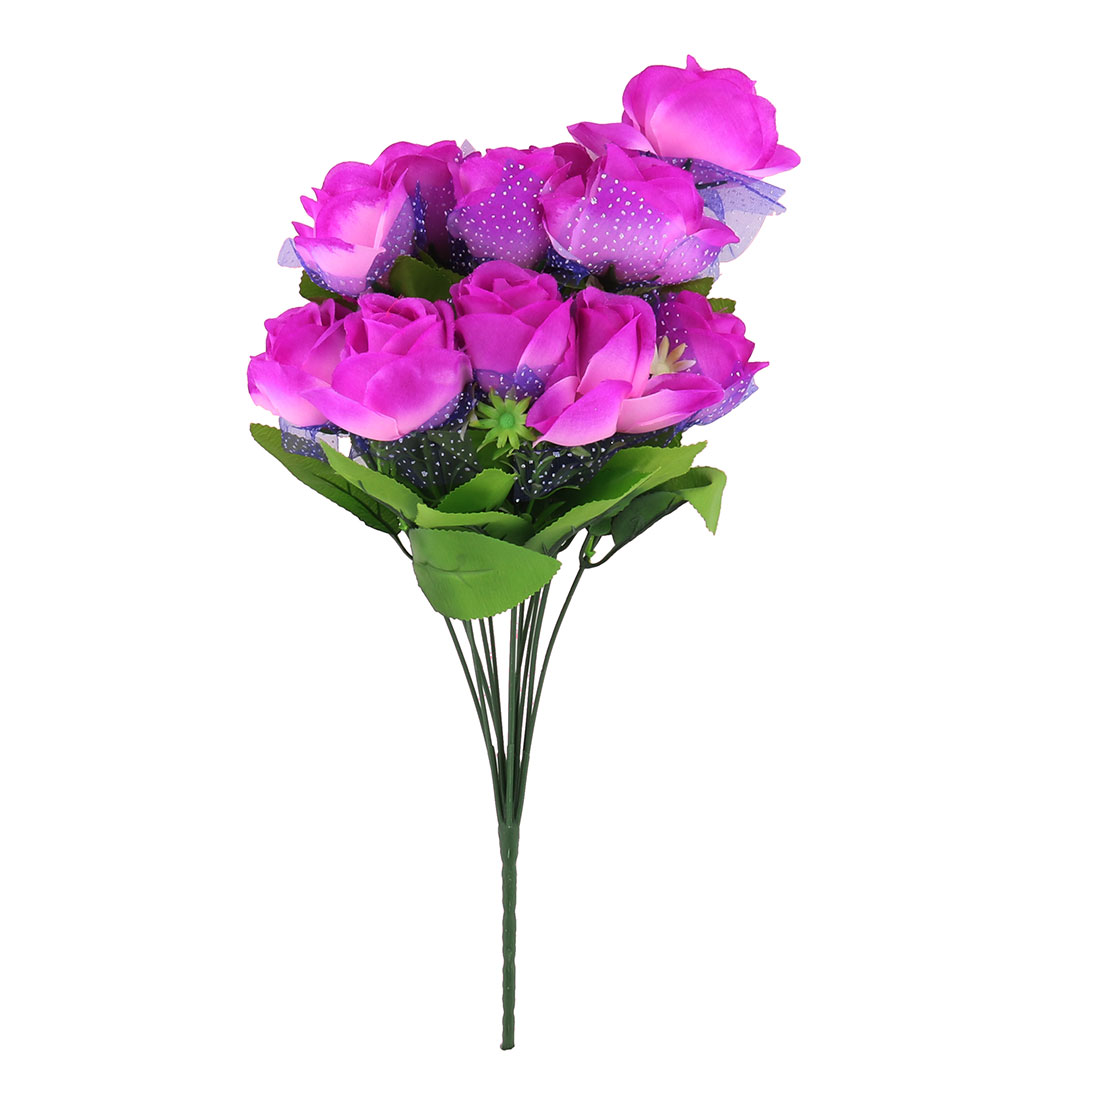 Festival Wedding Party 12 Stems Single Bunch Artificial Flower Bouquet Purple